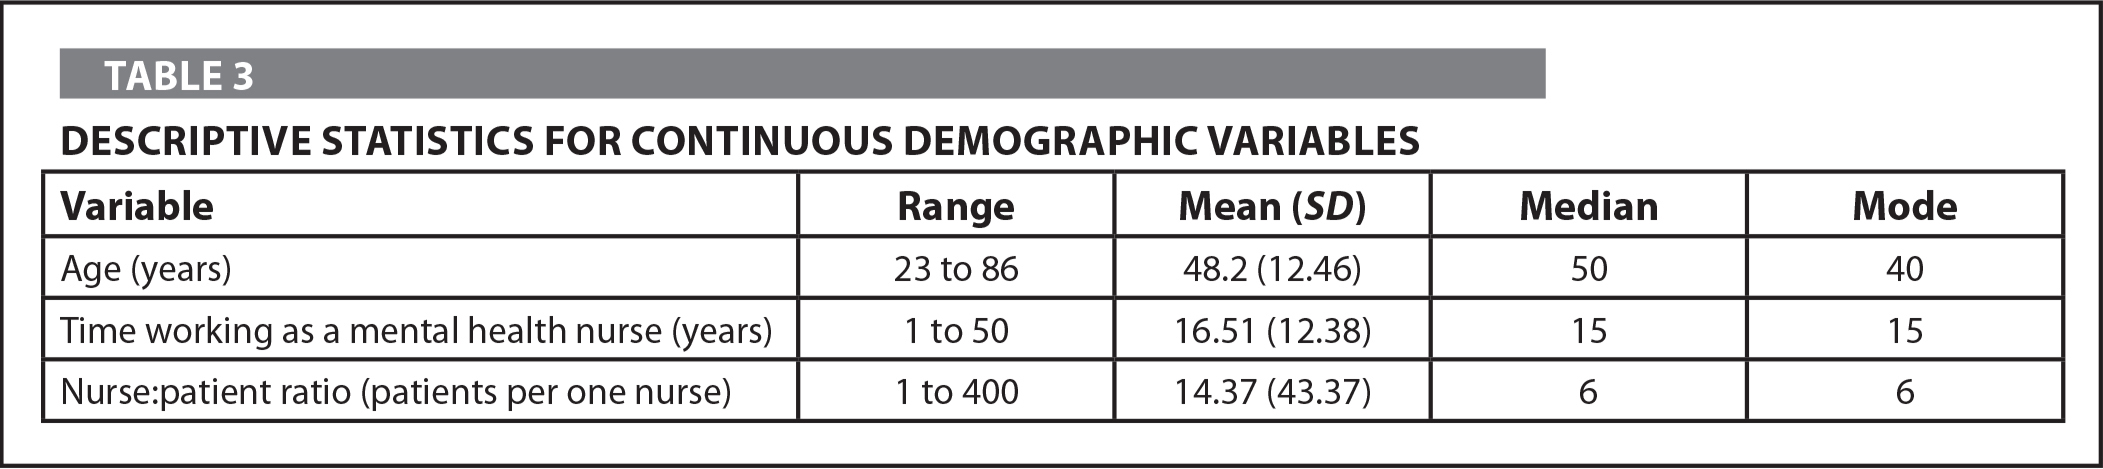 Descriptive Statistics for Continuous Demographic Variables